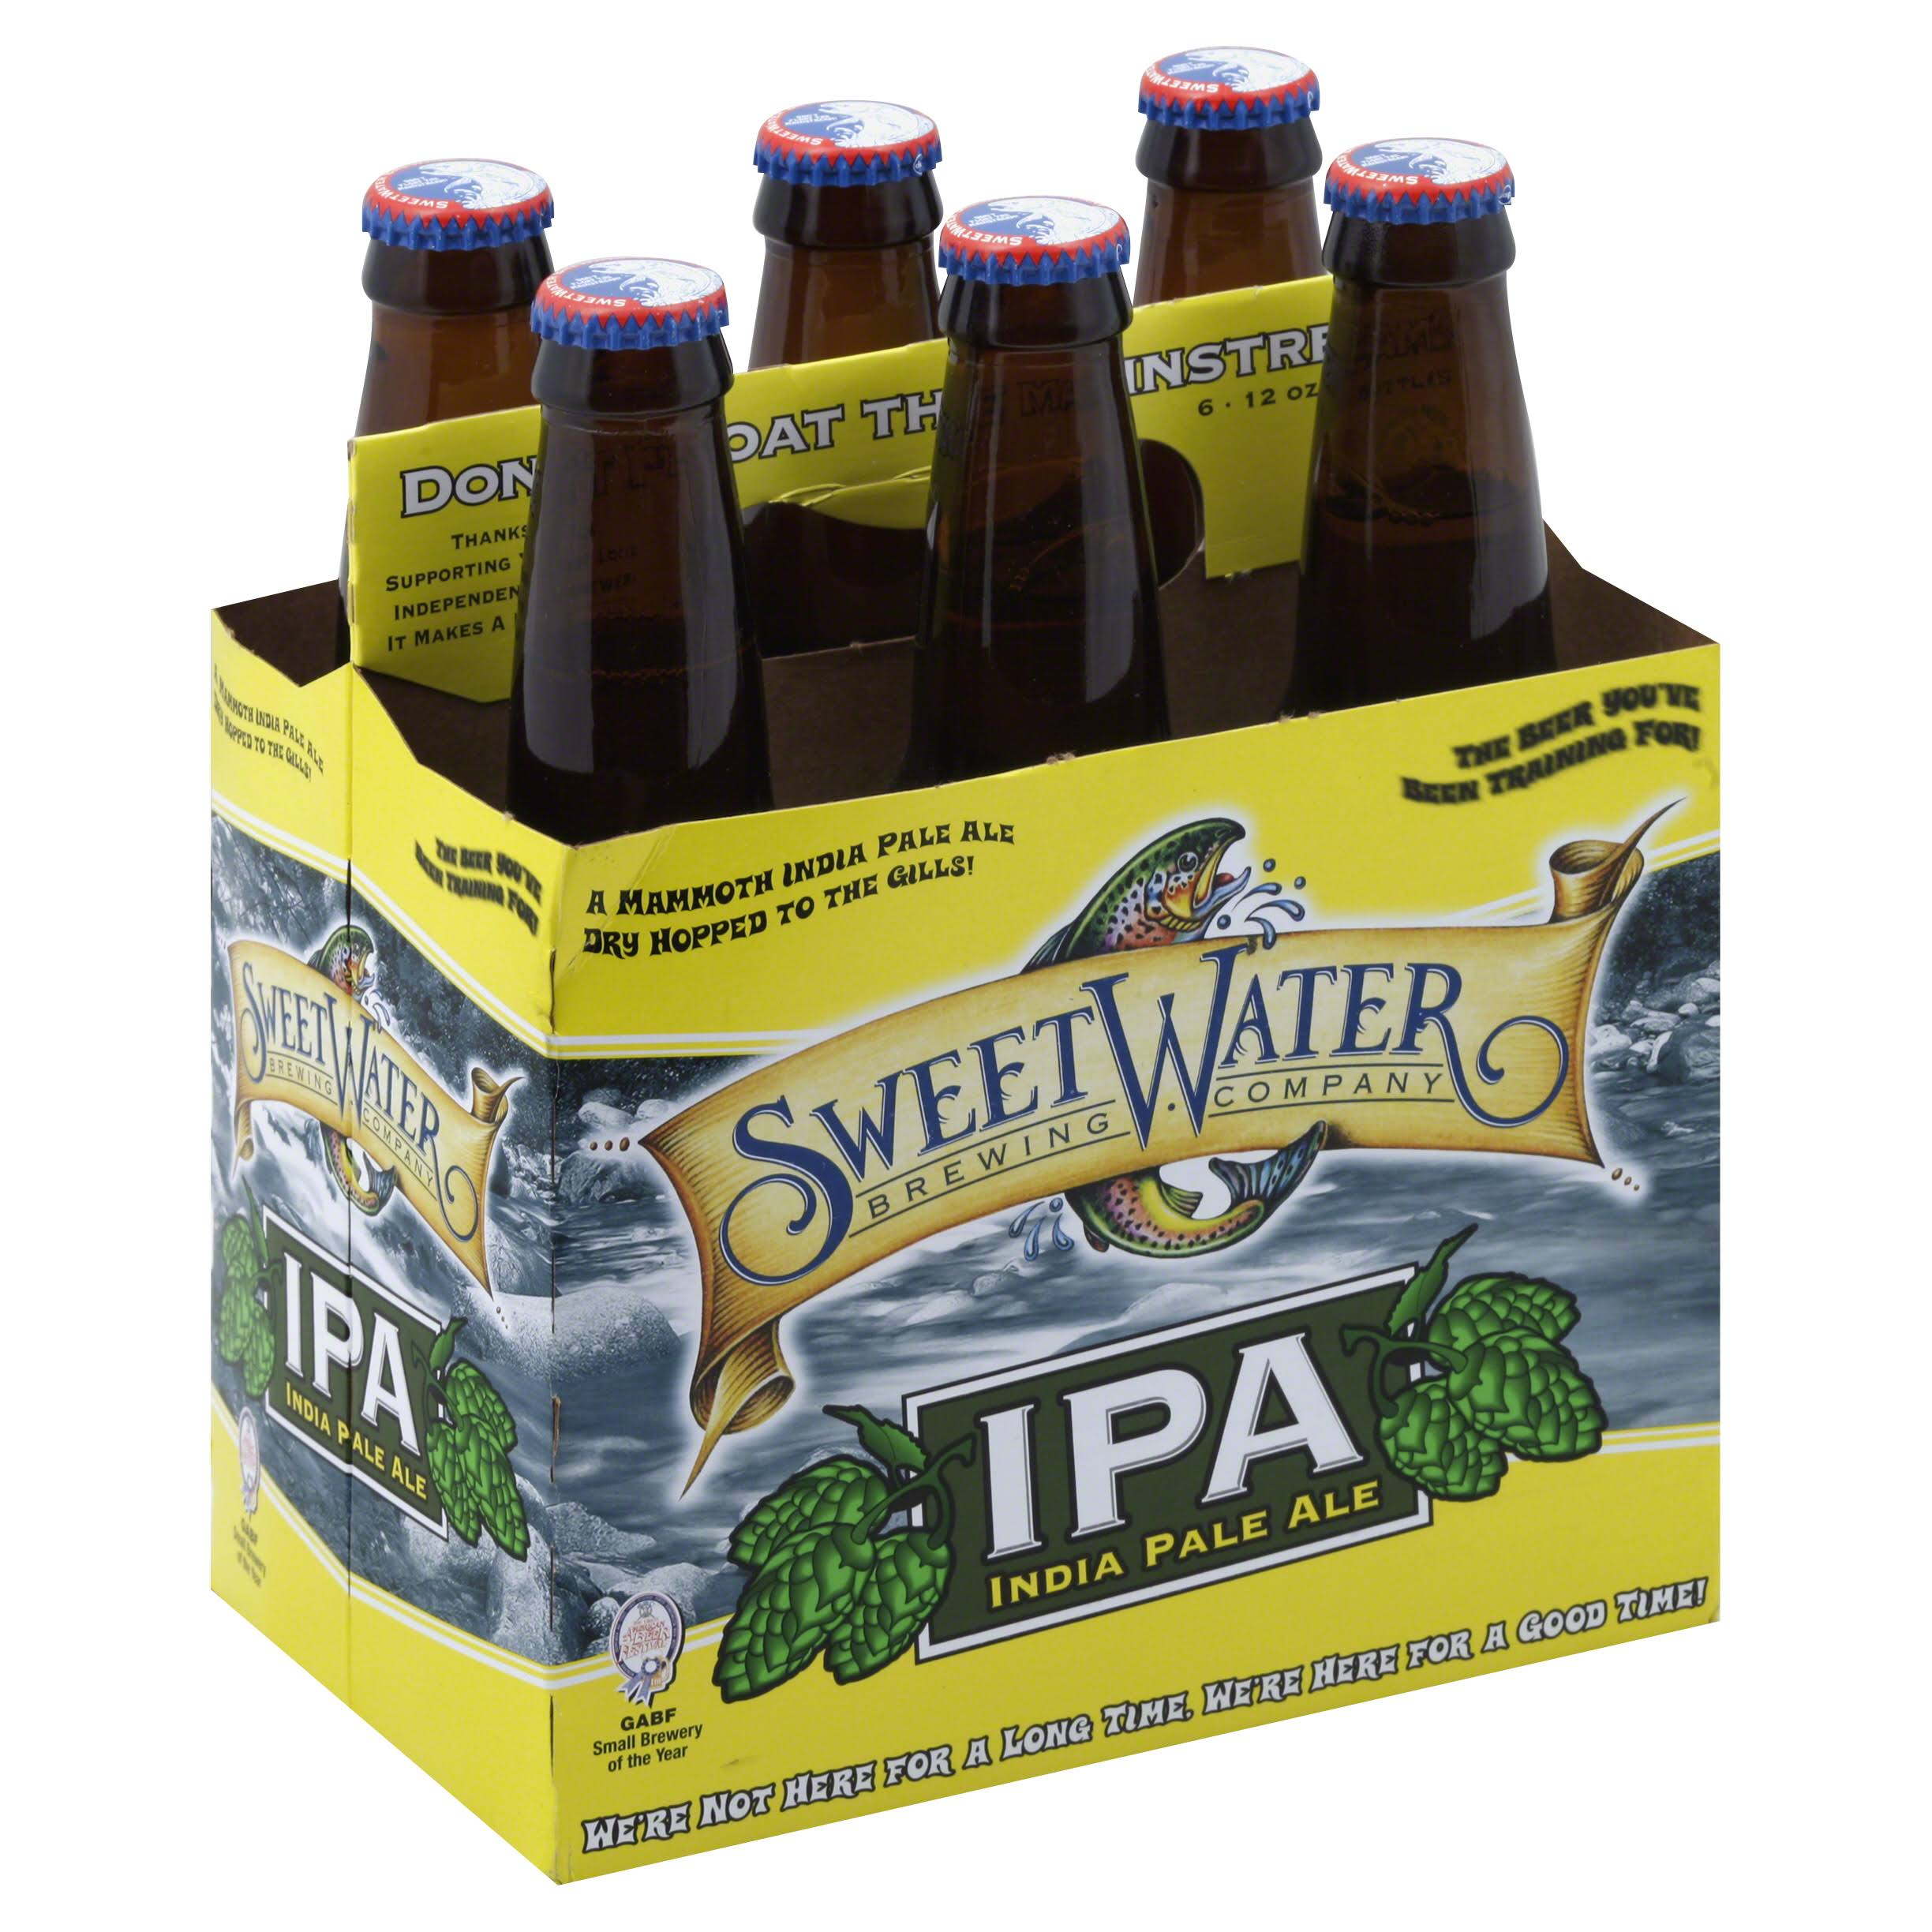 SweetWater IPA, India Pale Ale - 6 pack, 12 oz bottles